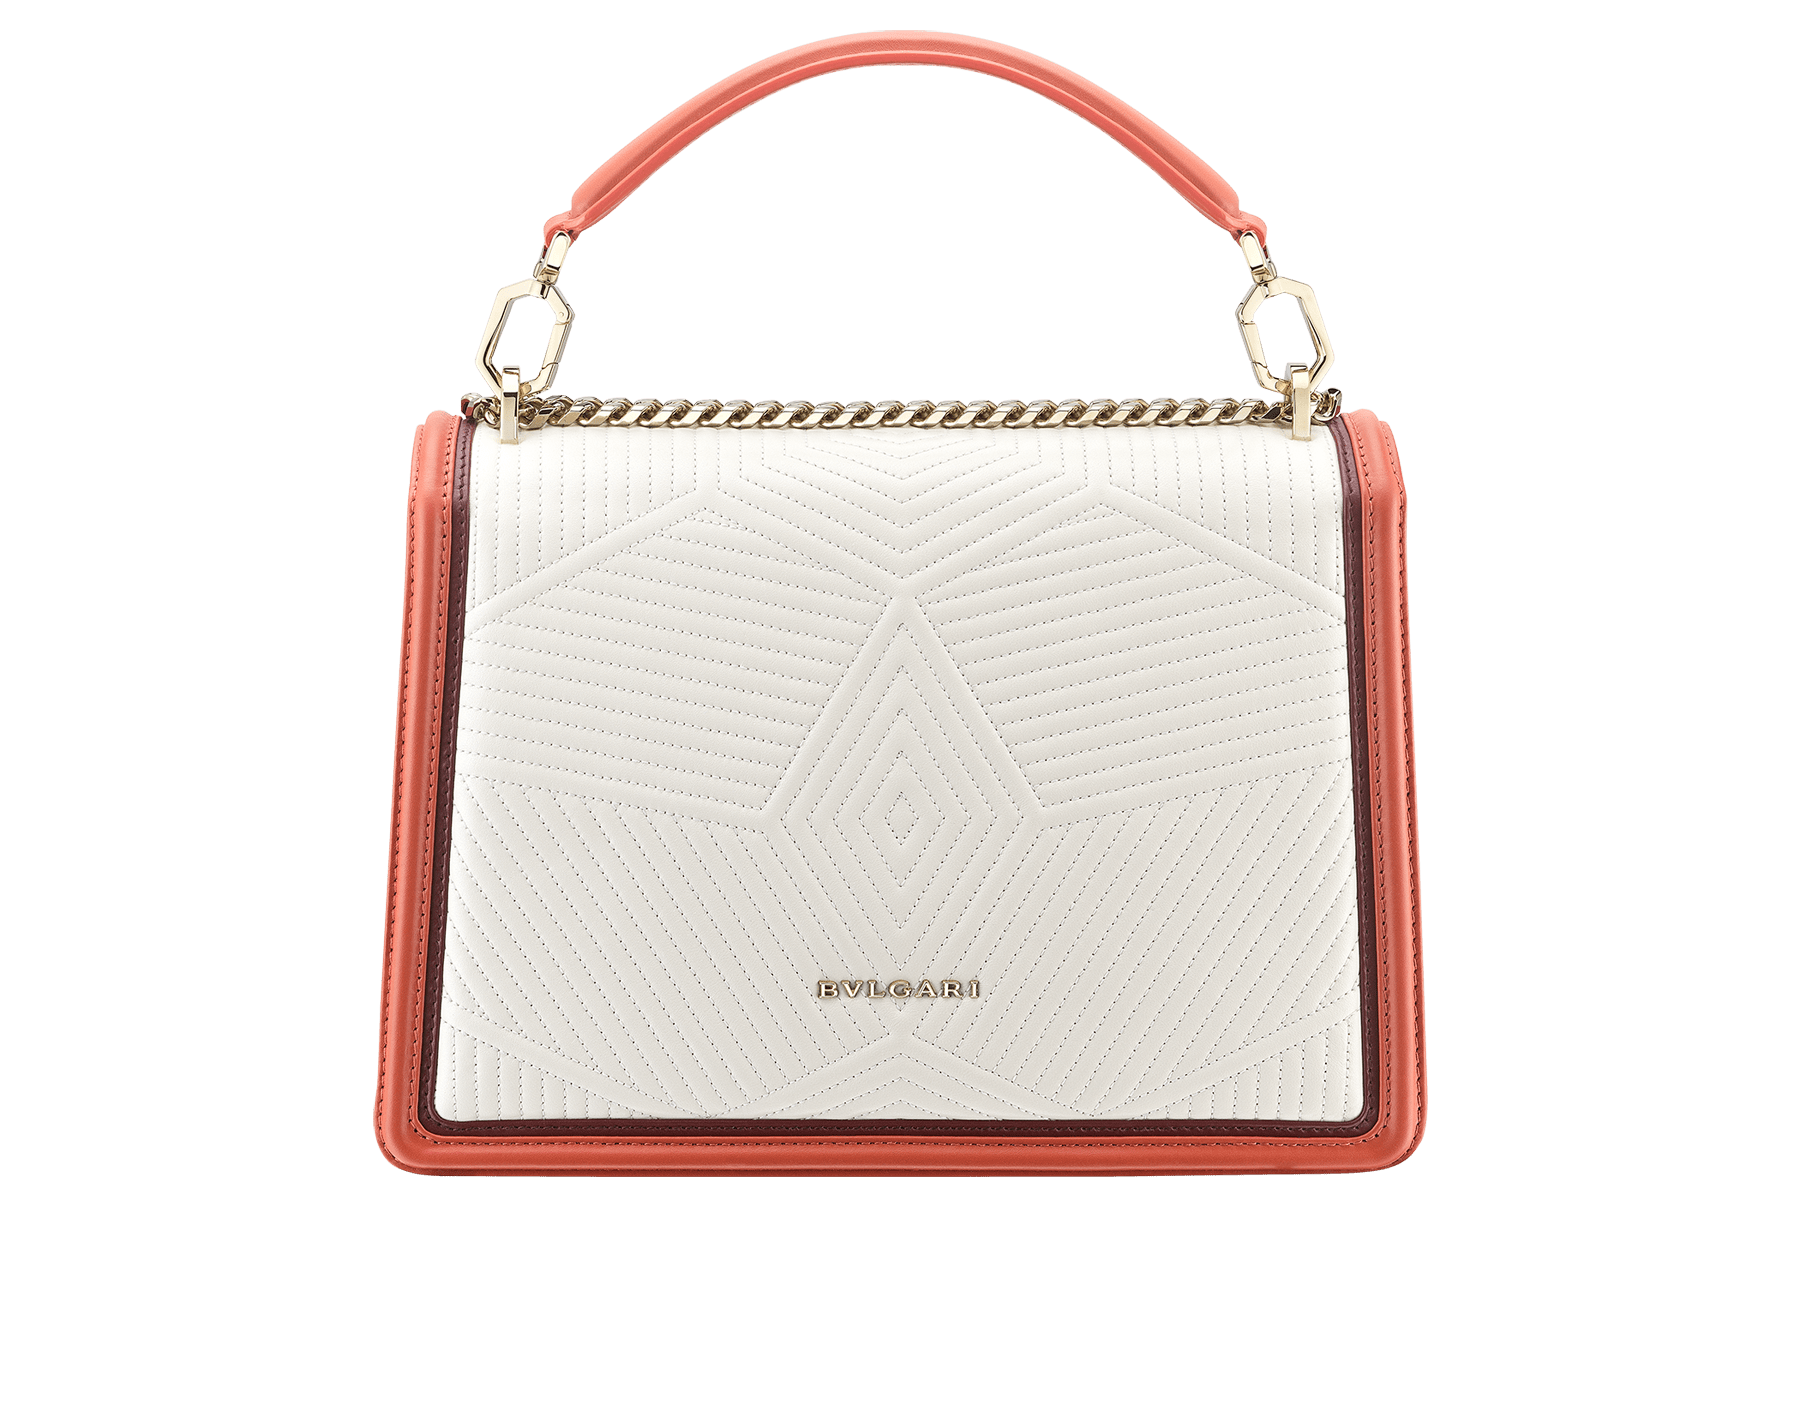 Serpenti Diamond Blast shoulder bag in white agate quilted nappa leather and imperial topaz with Roman garnet calf leather frames. Iconic snakehead closure in light gold plated brass embellished with Roman garnet and black enamel and black onyx eyes. 288840 image 4